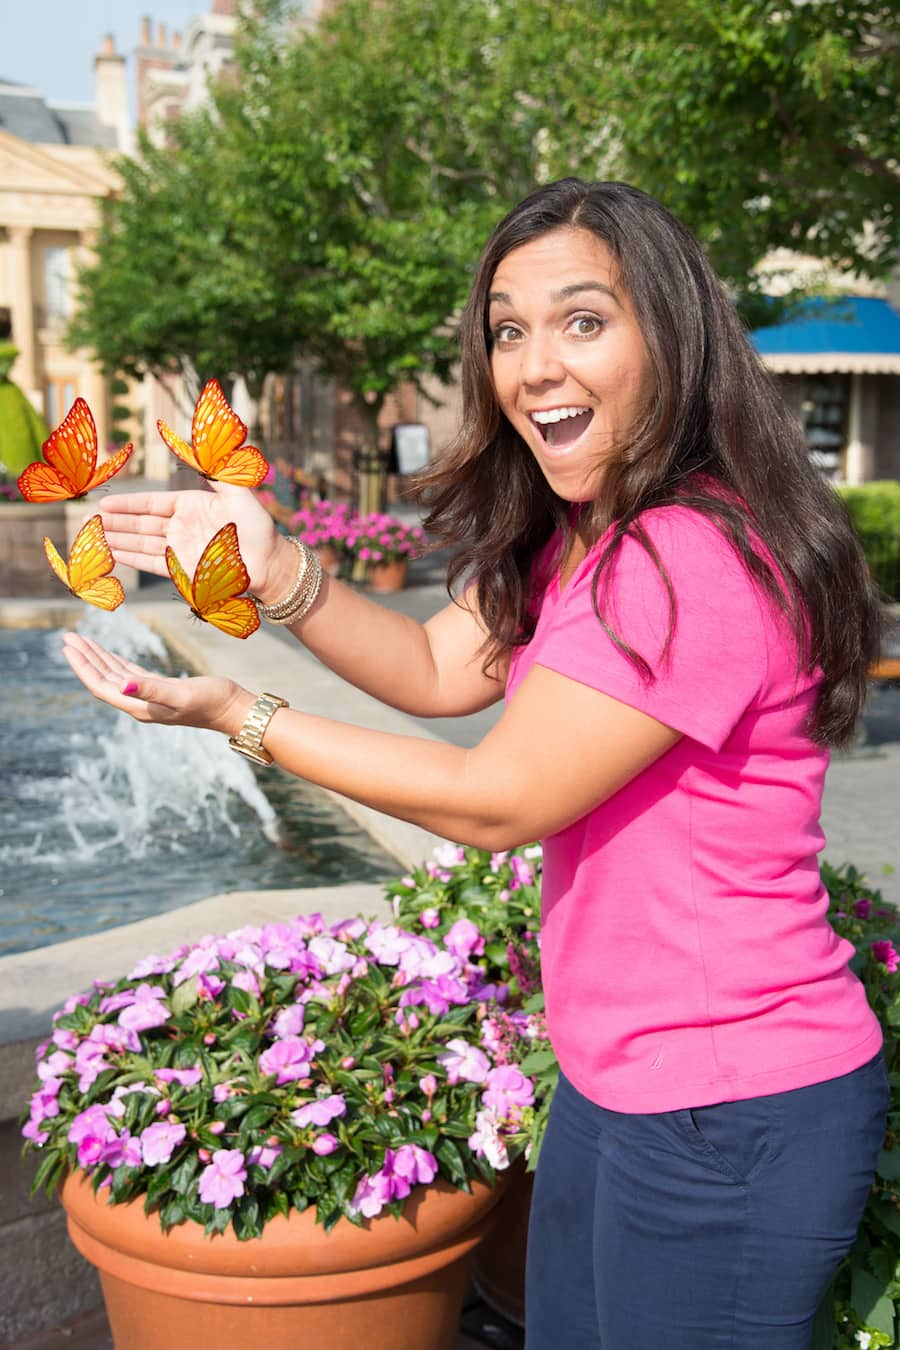 Disney PhotoPass Magic Shots During the Epcot International Flower & Garden Festival